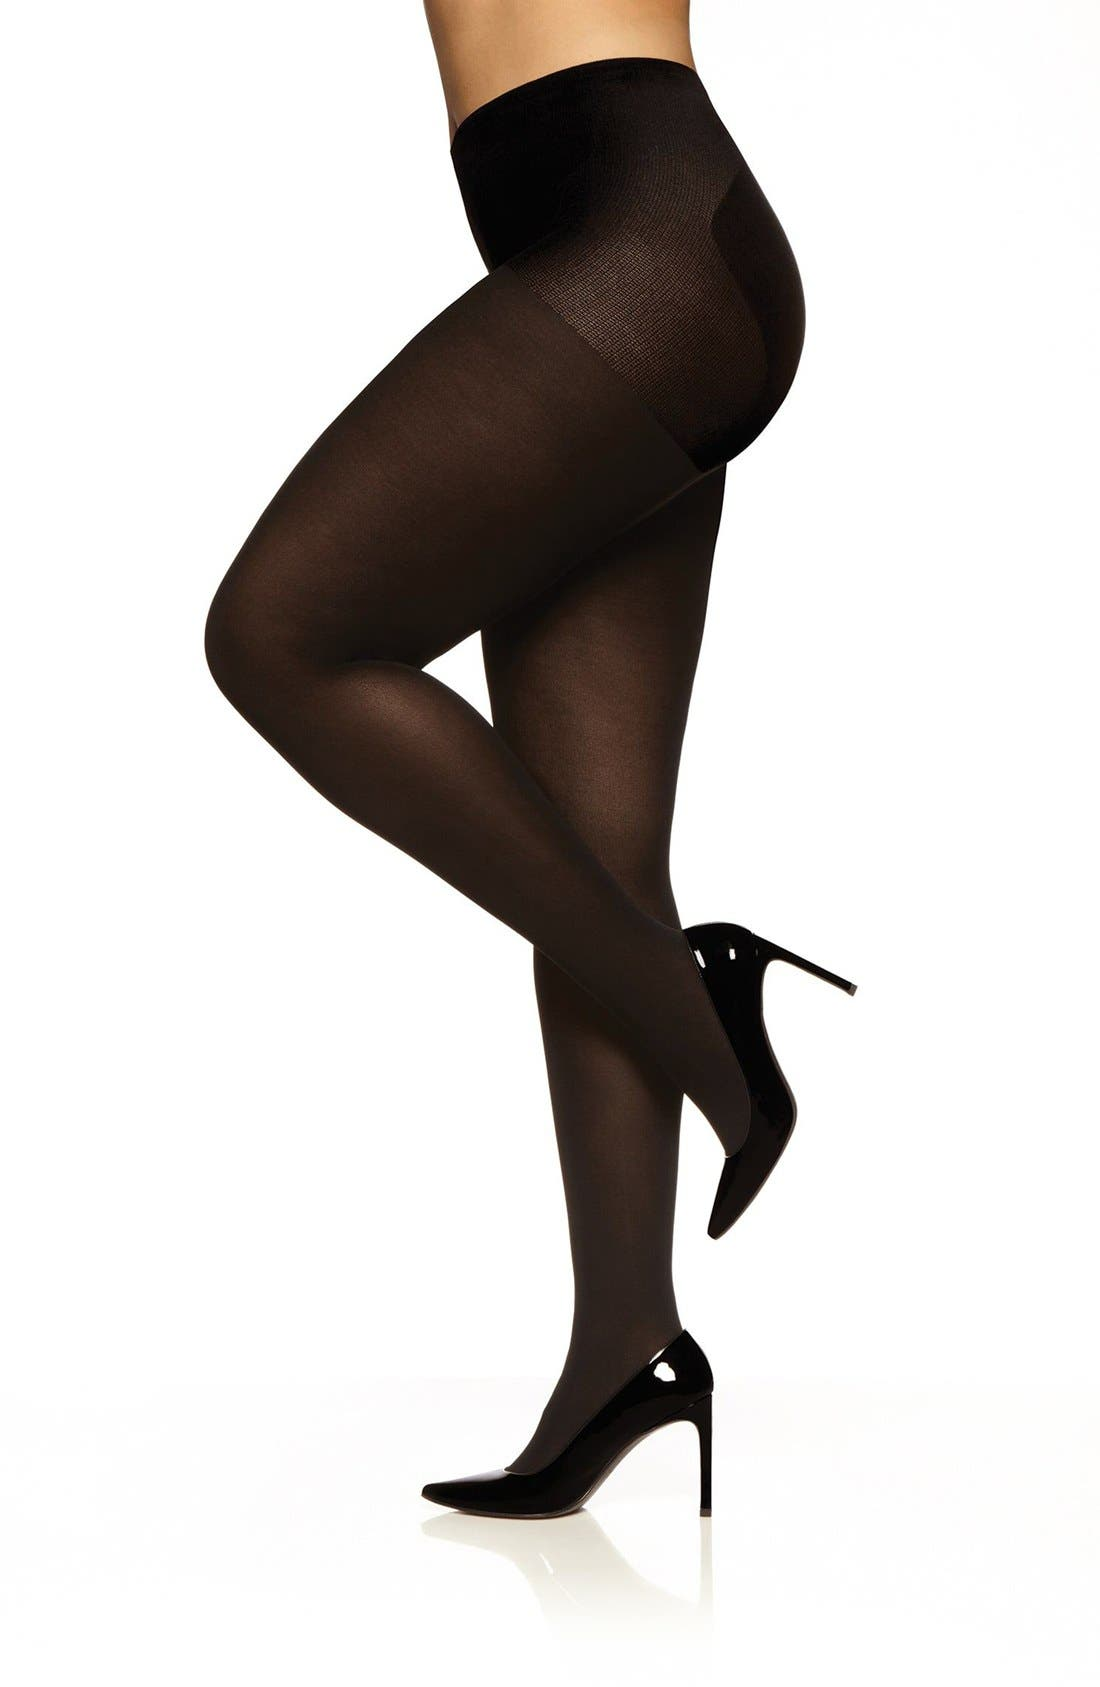 Easy-On Tights,                             Main thumbnail 1, color,                             BLACK